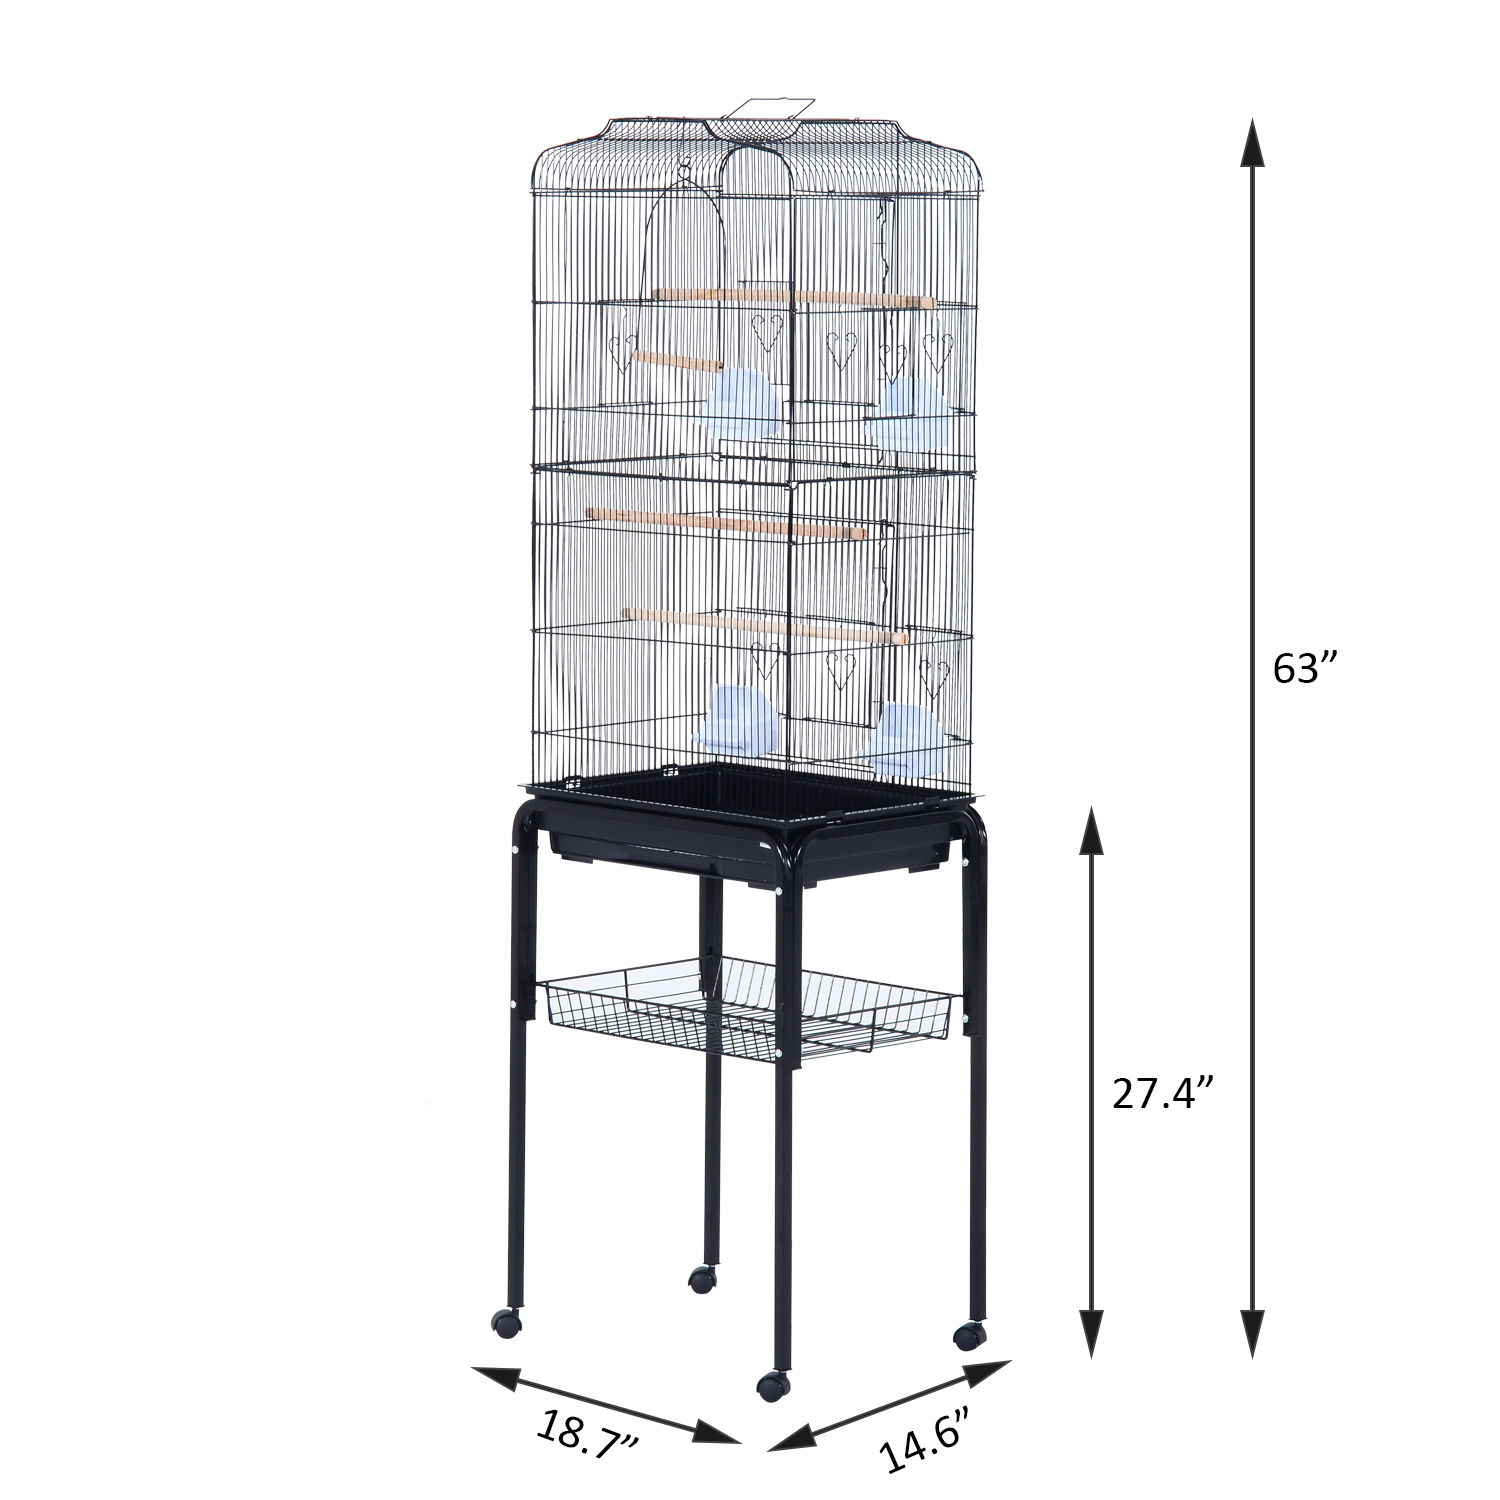 Bird-Cage-63-034-Large-Finch-Parrot-Conure-Metal-Wheels-Play-Top-House-Pet-Supplies thumbnail 3